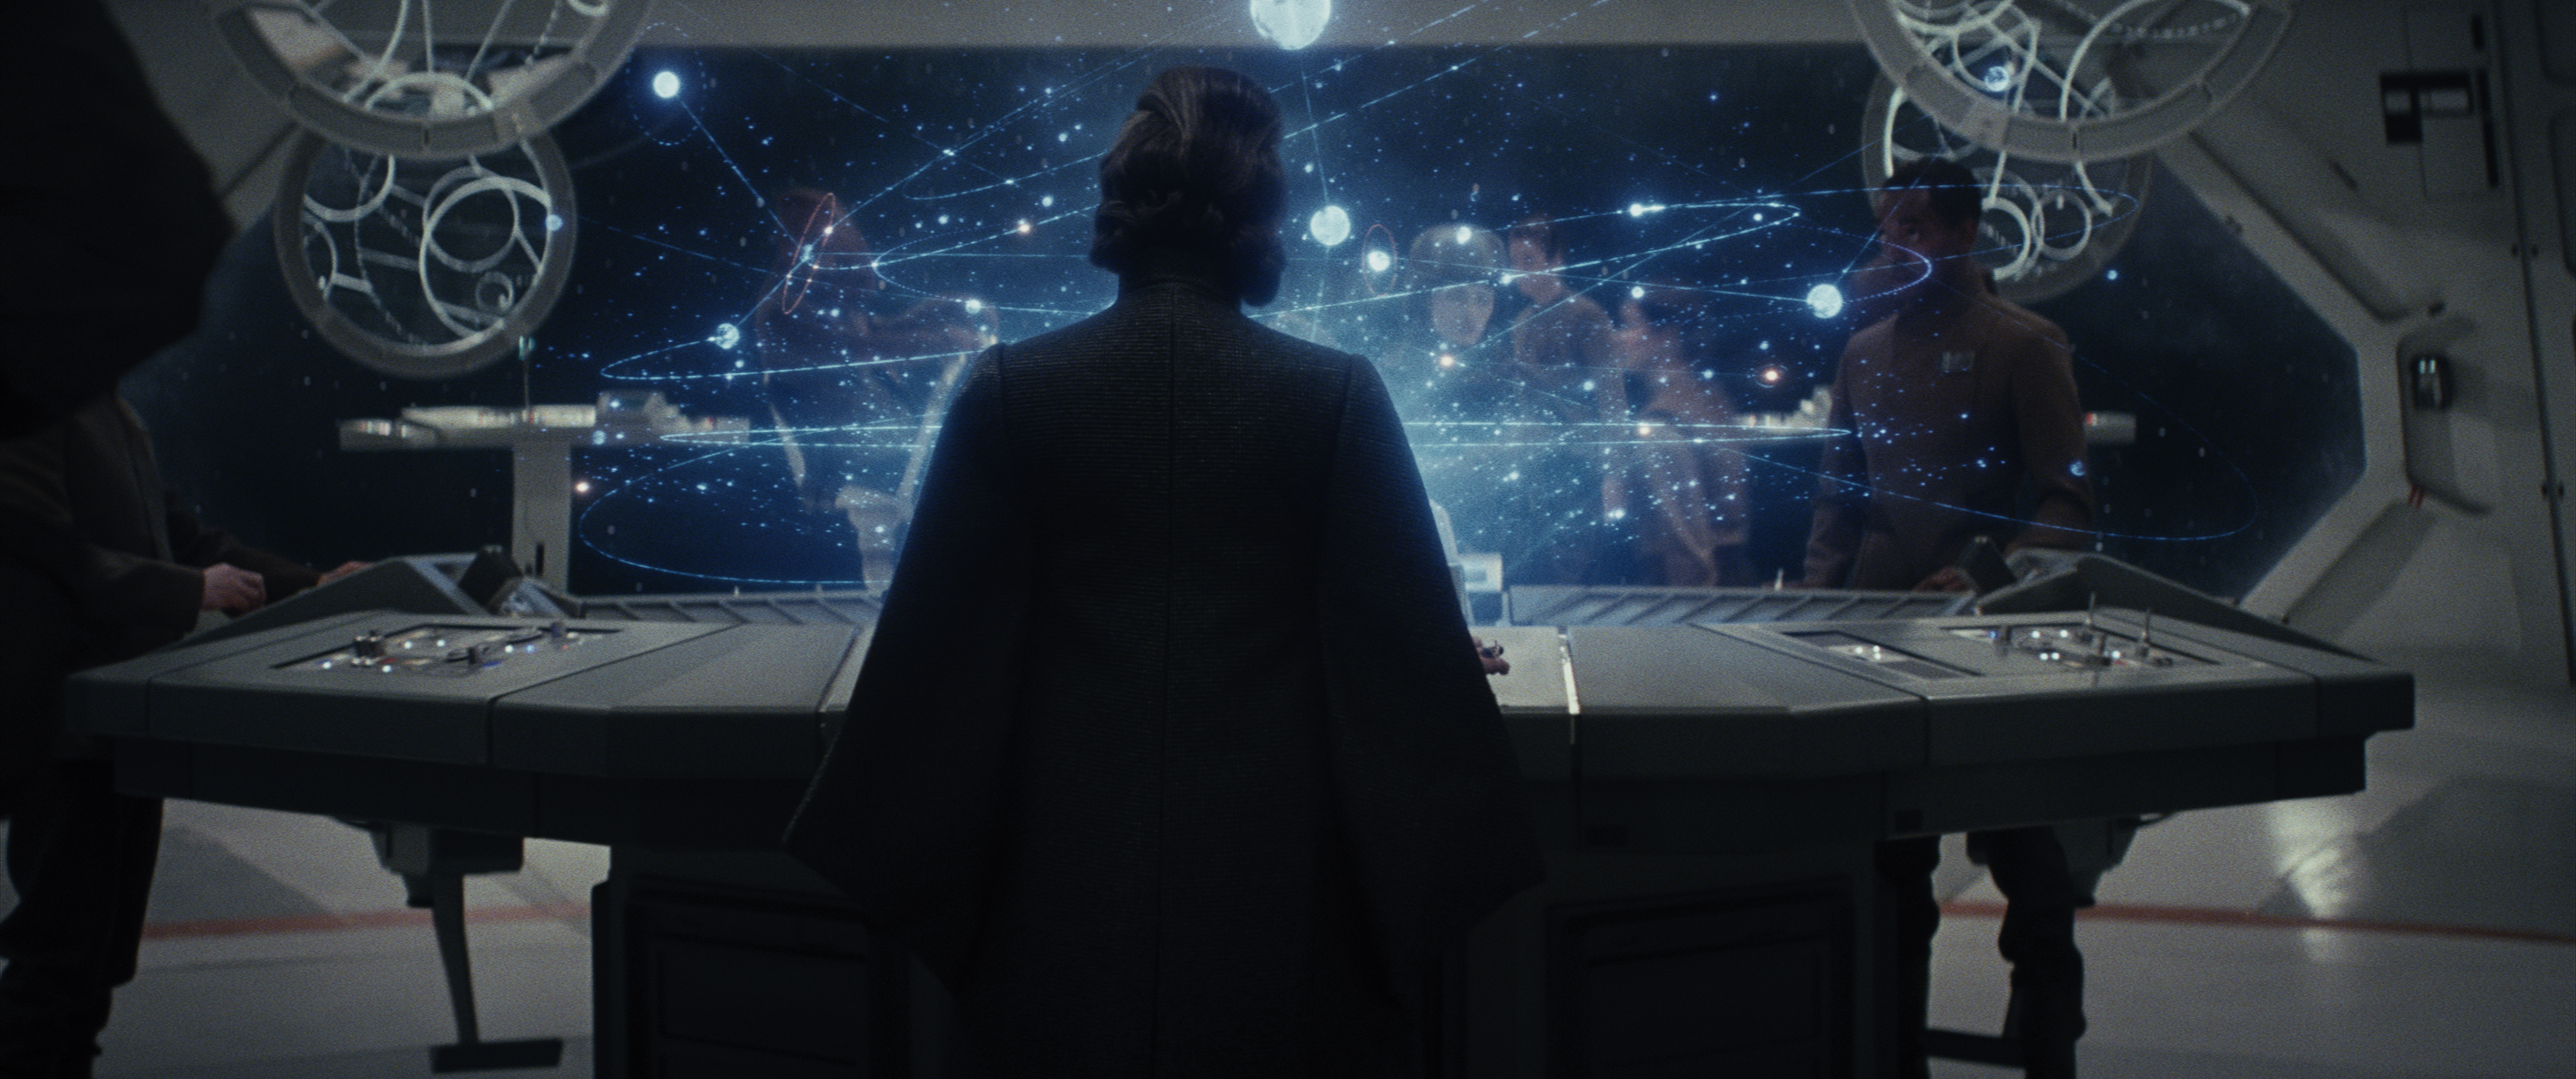 How Disney is Changing Hollywood Rules with 'Star Wars: The Last Jedi'